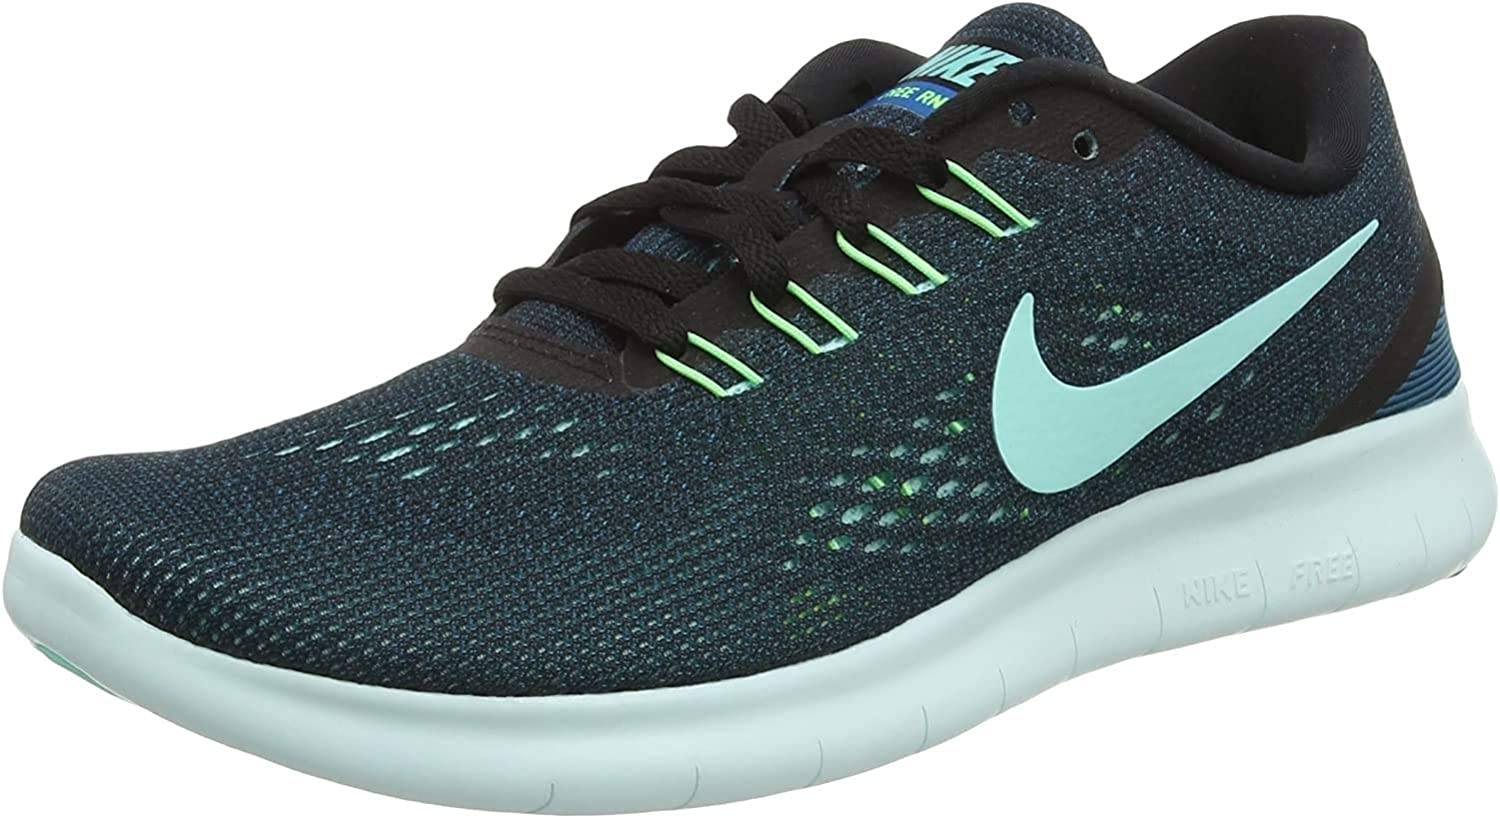 munición suficiente Plantando árboles  Amazon.com | Nike Free Rn Women's Lifestyle Running Shoes Size US 6 M  Black/Hyper Turquoise Green Abyss Volt | Running